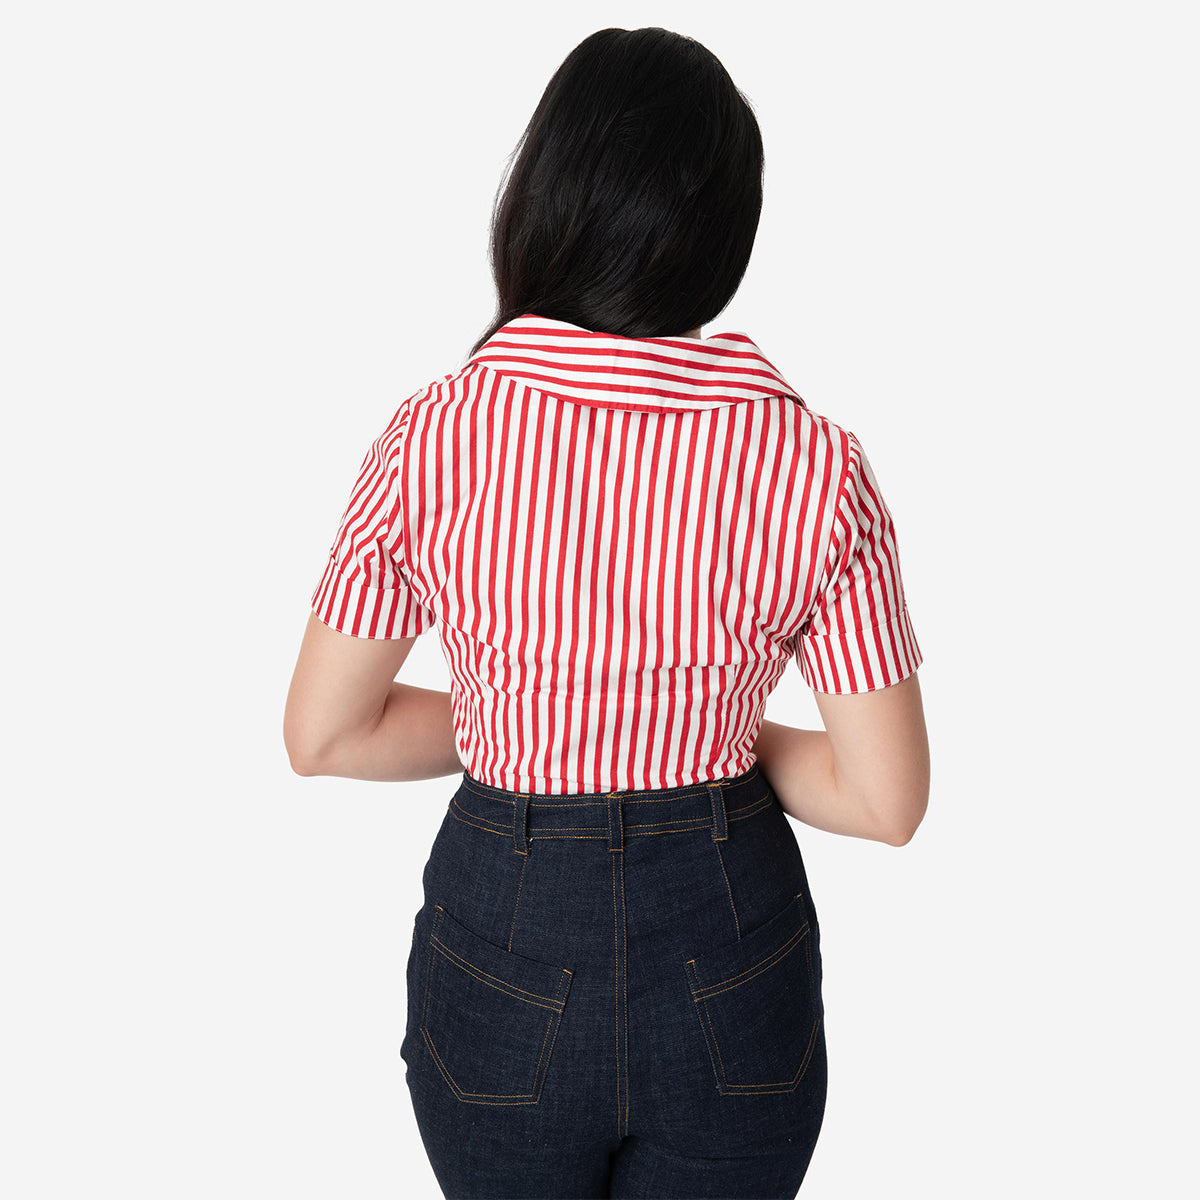 I Love Lucy x Unique Vintage: The Little Ricky Striped Blouse